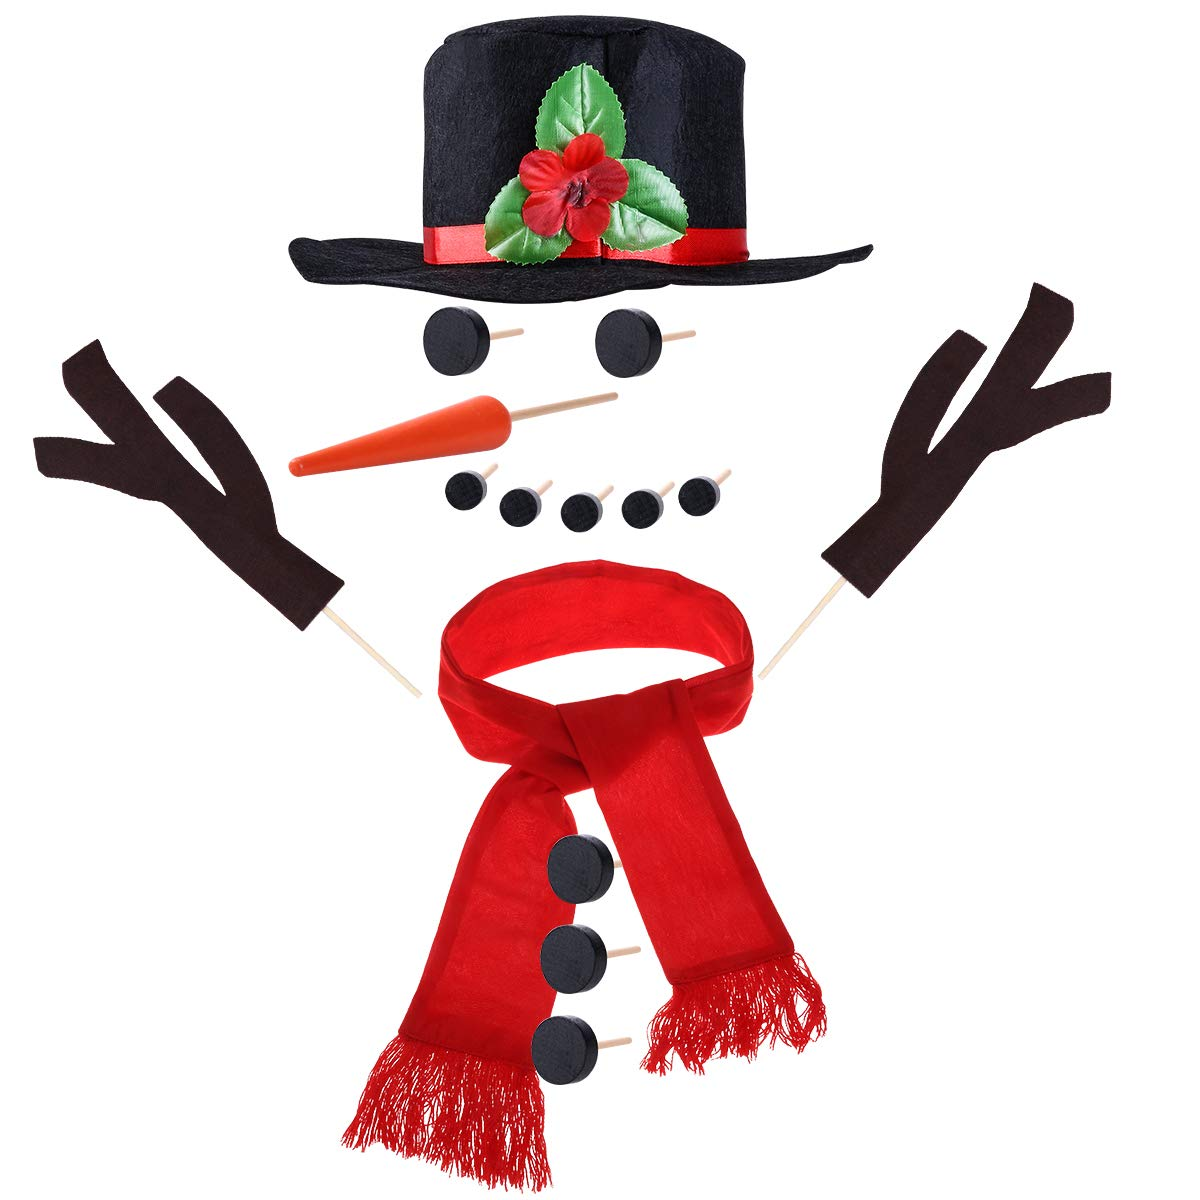 TOYMYTOY Snowman Decorating Kit Snowman Dressing Making Kit for Winter Holiday Outdoor Snowman Decoration, 15Pcs